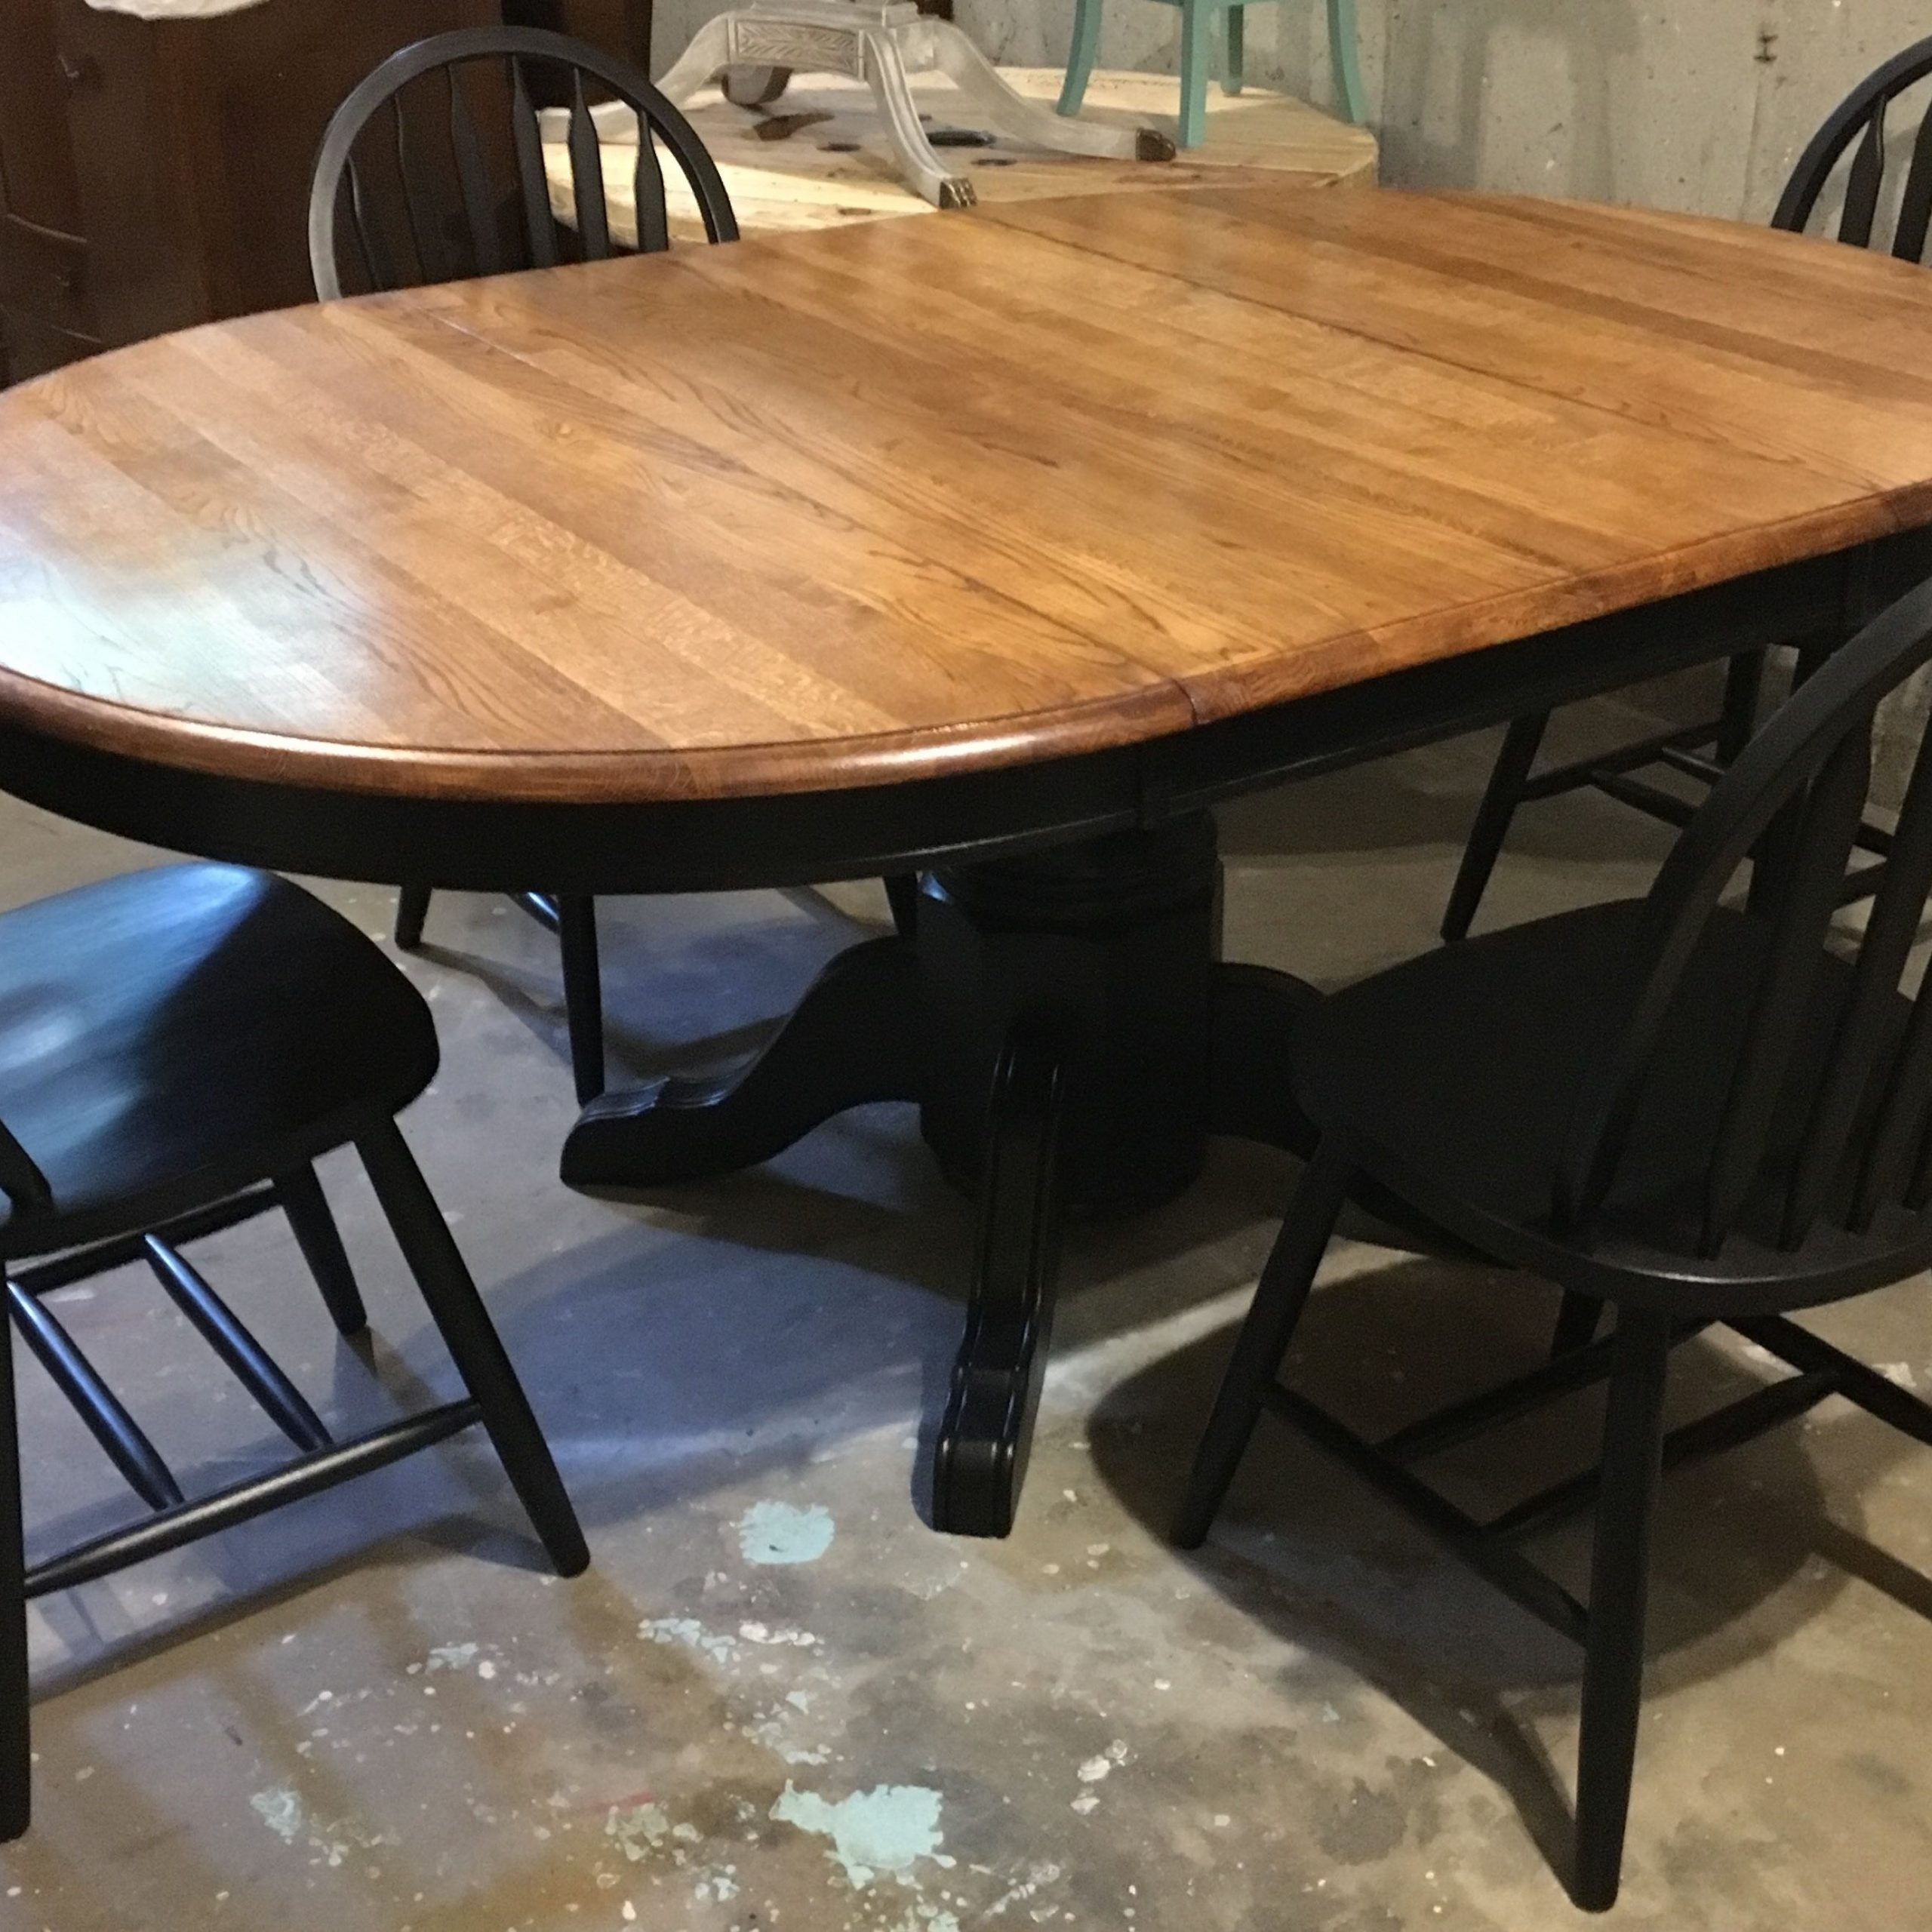 Newest Blackened Oak Benchwright Dining Tables for Oak Tabletop With Large Leaf, Sanded Down To Raw Wood And